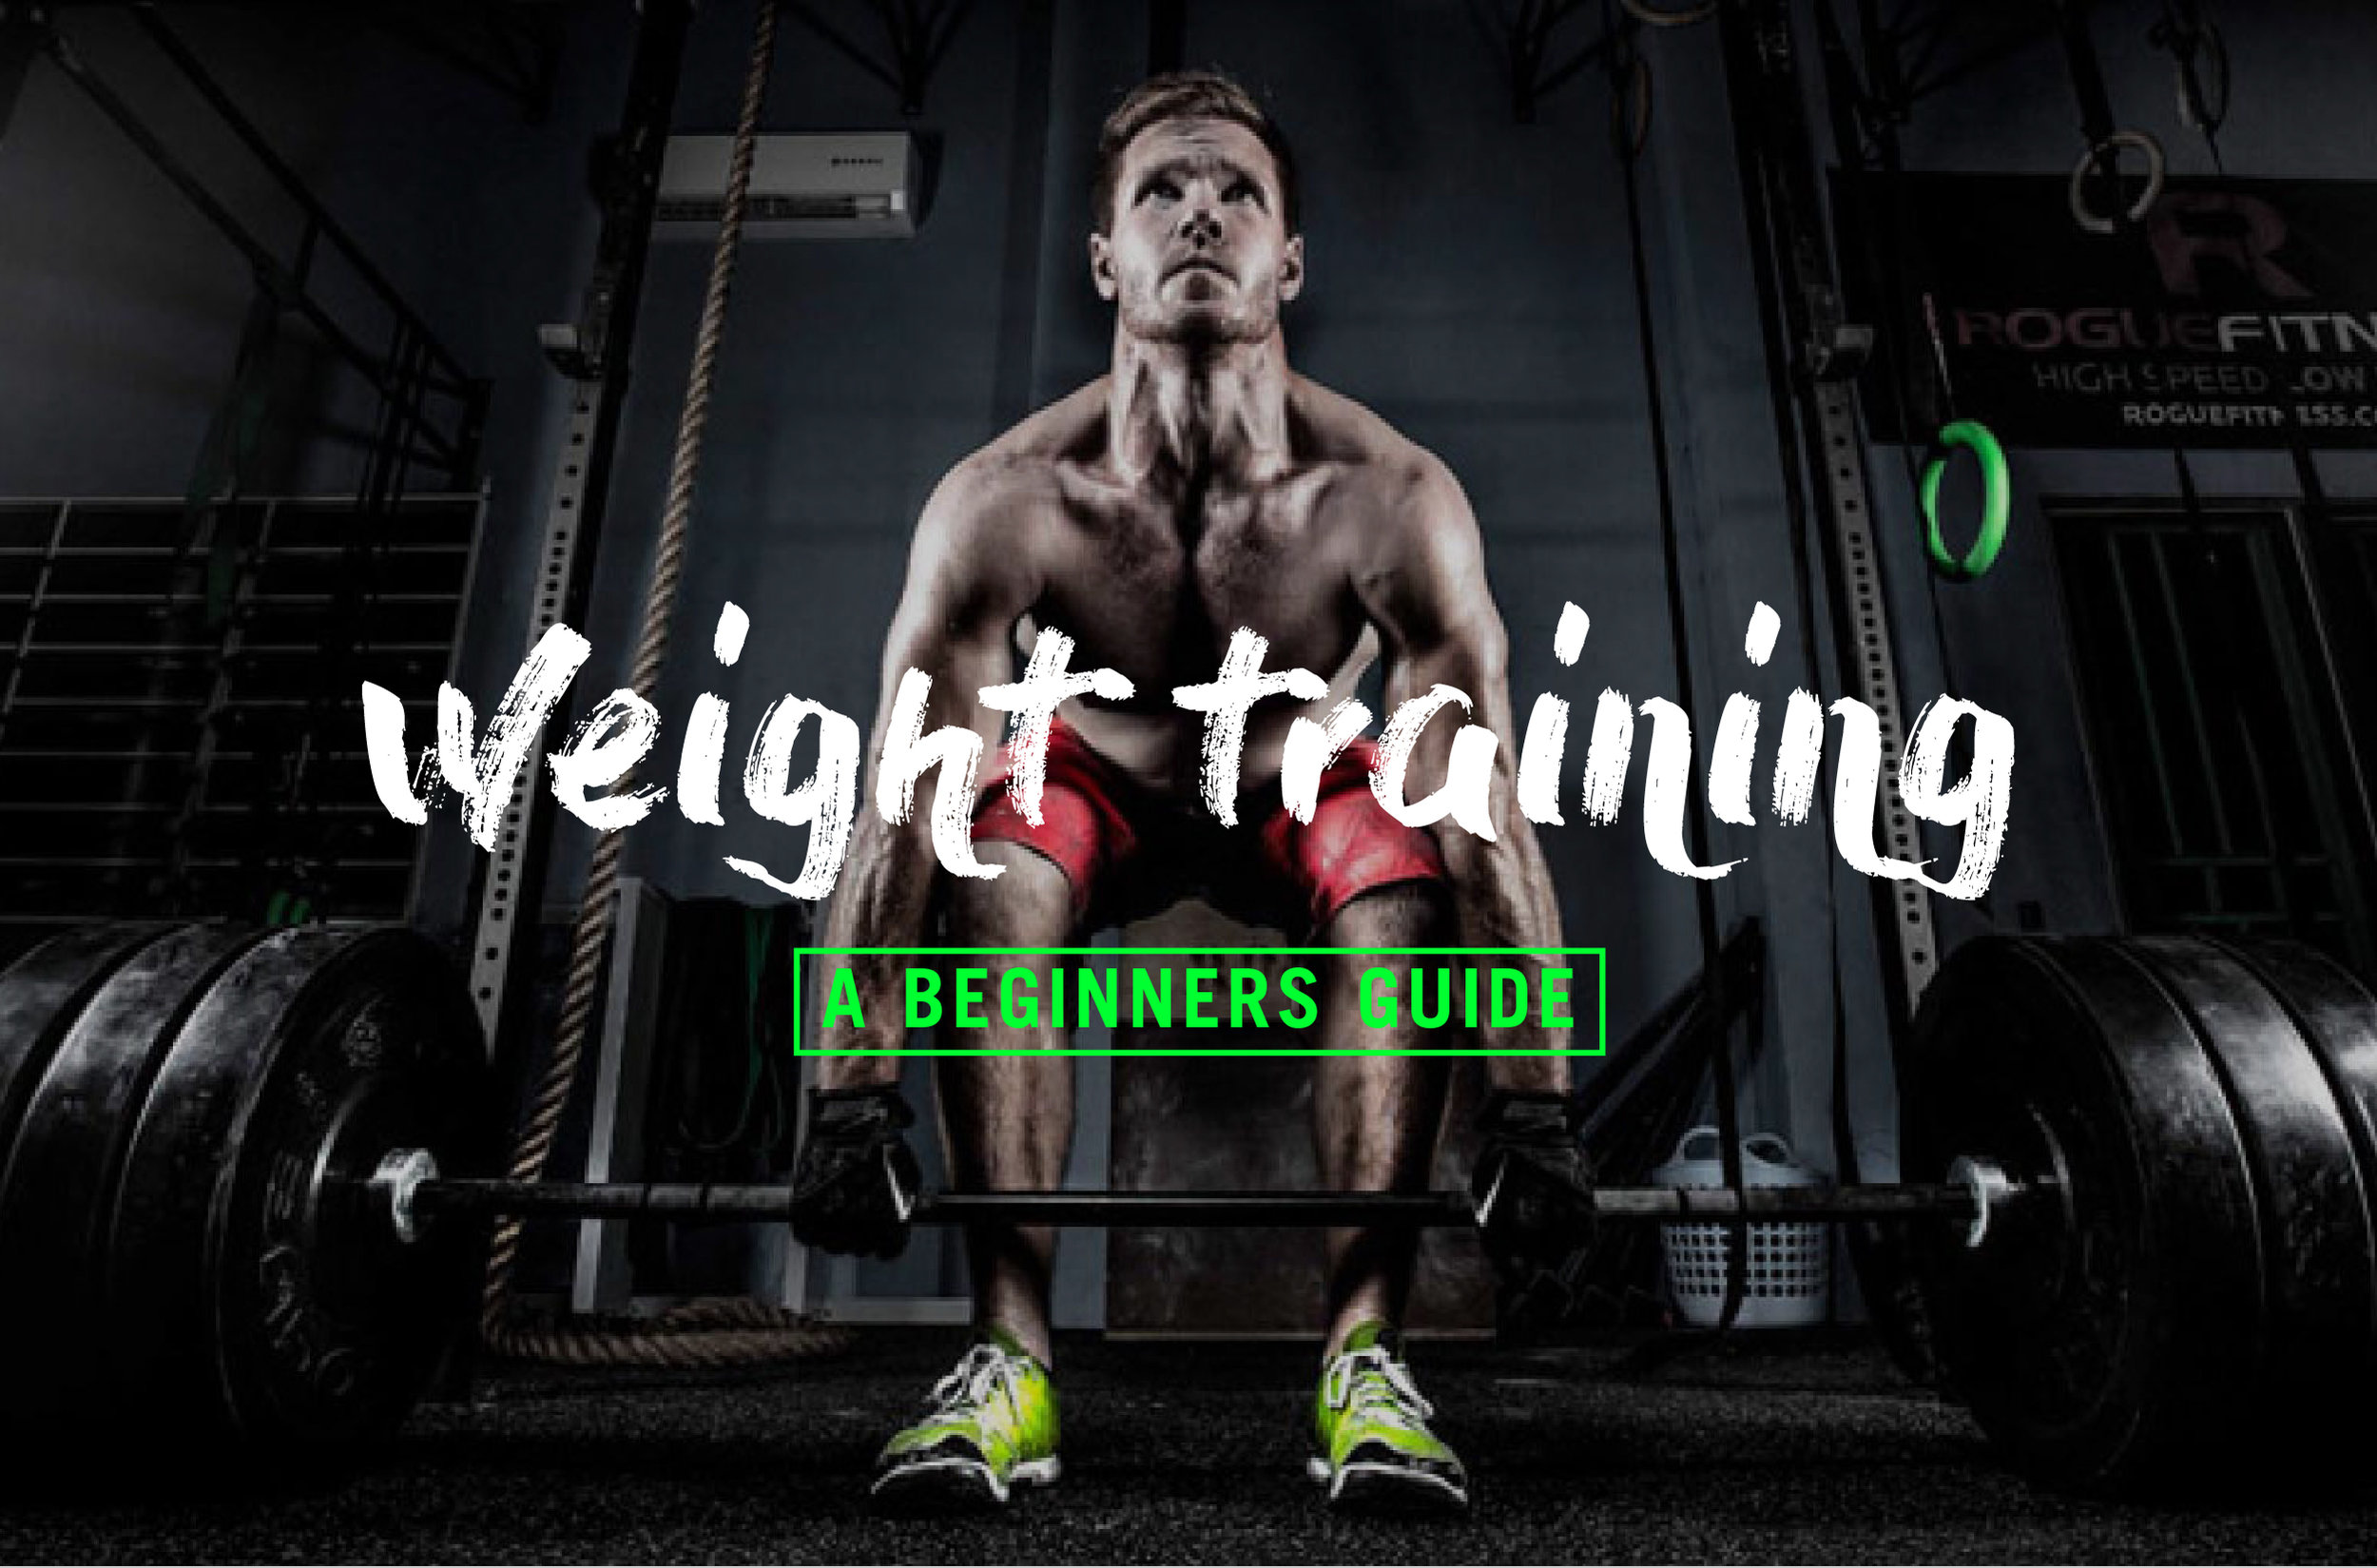 A beginners guide to weight training.